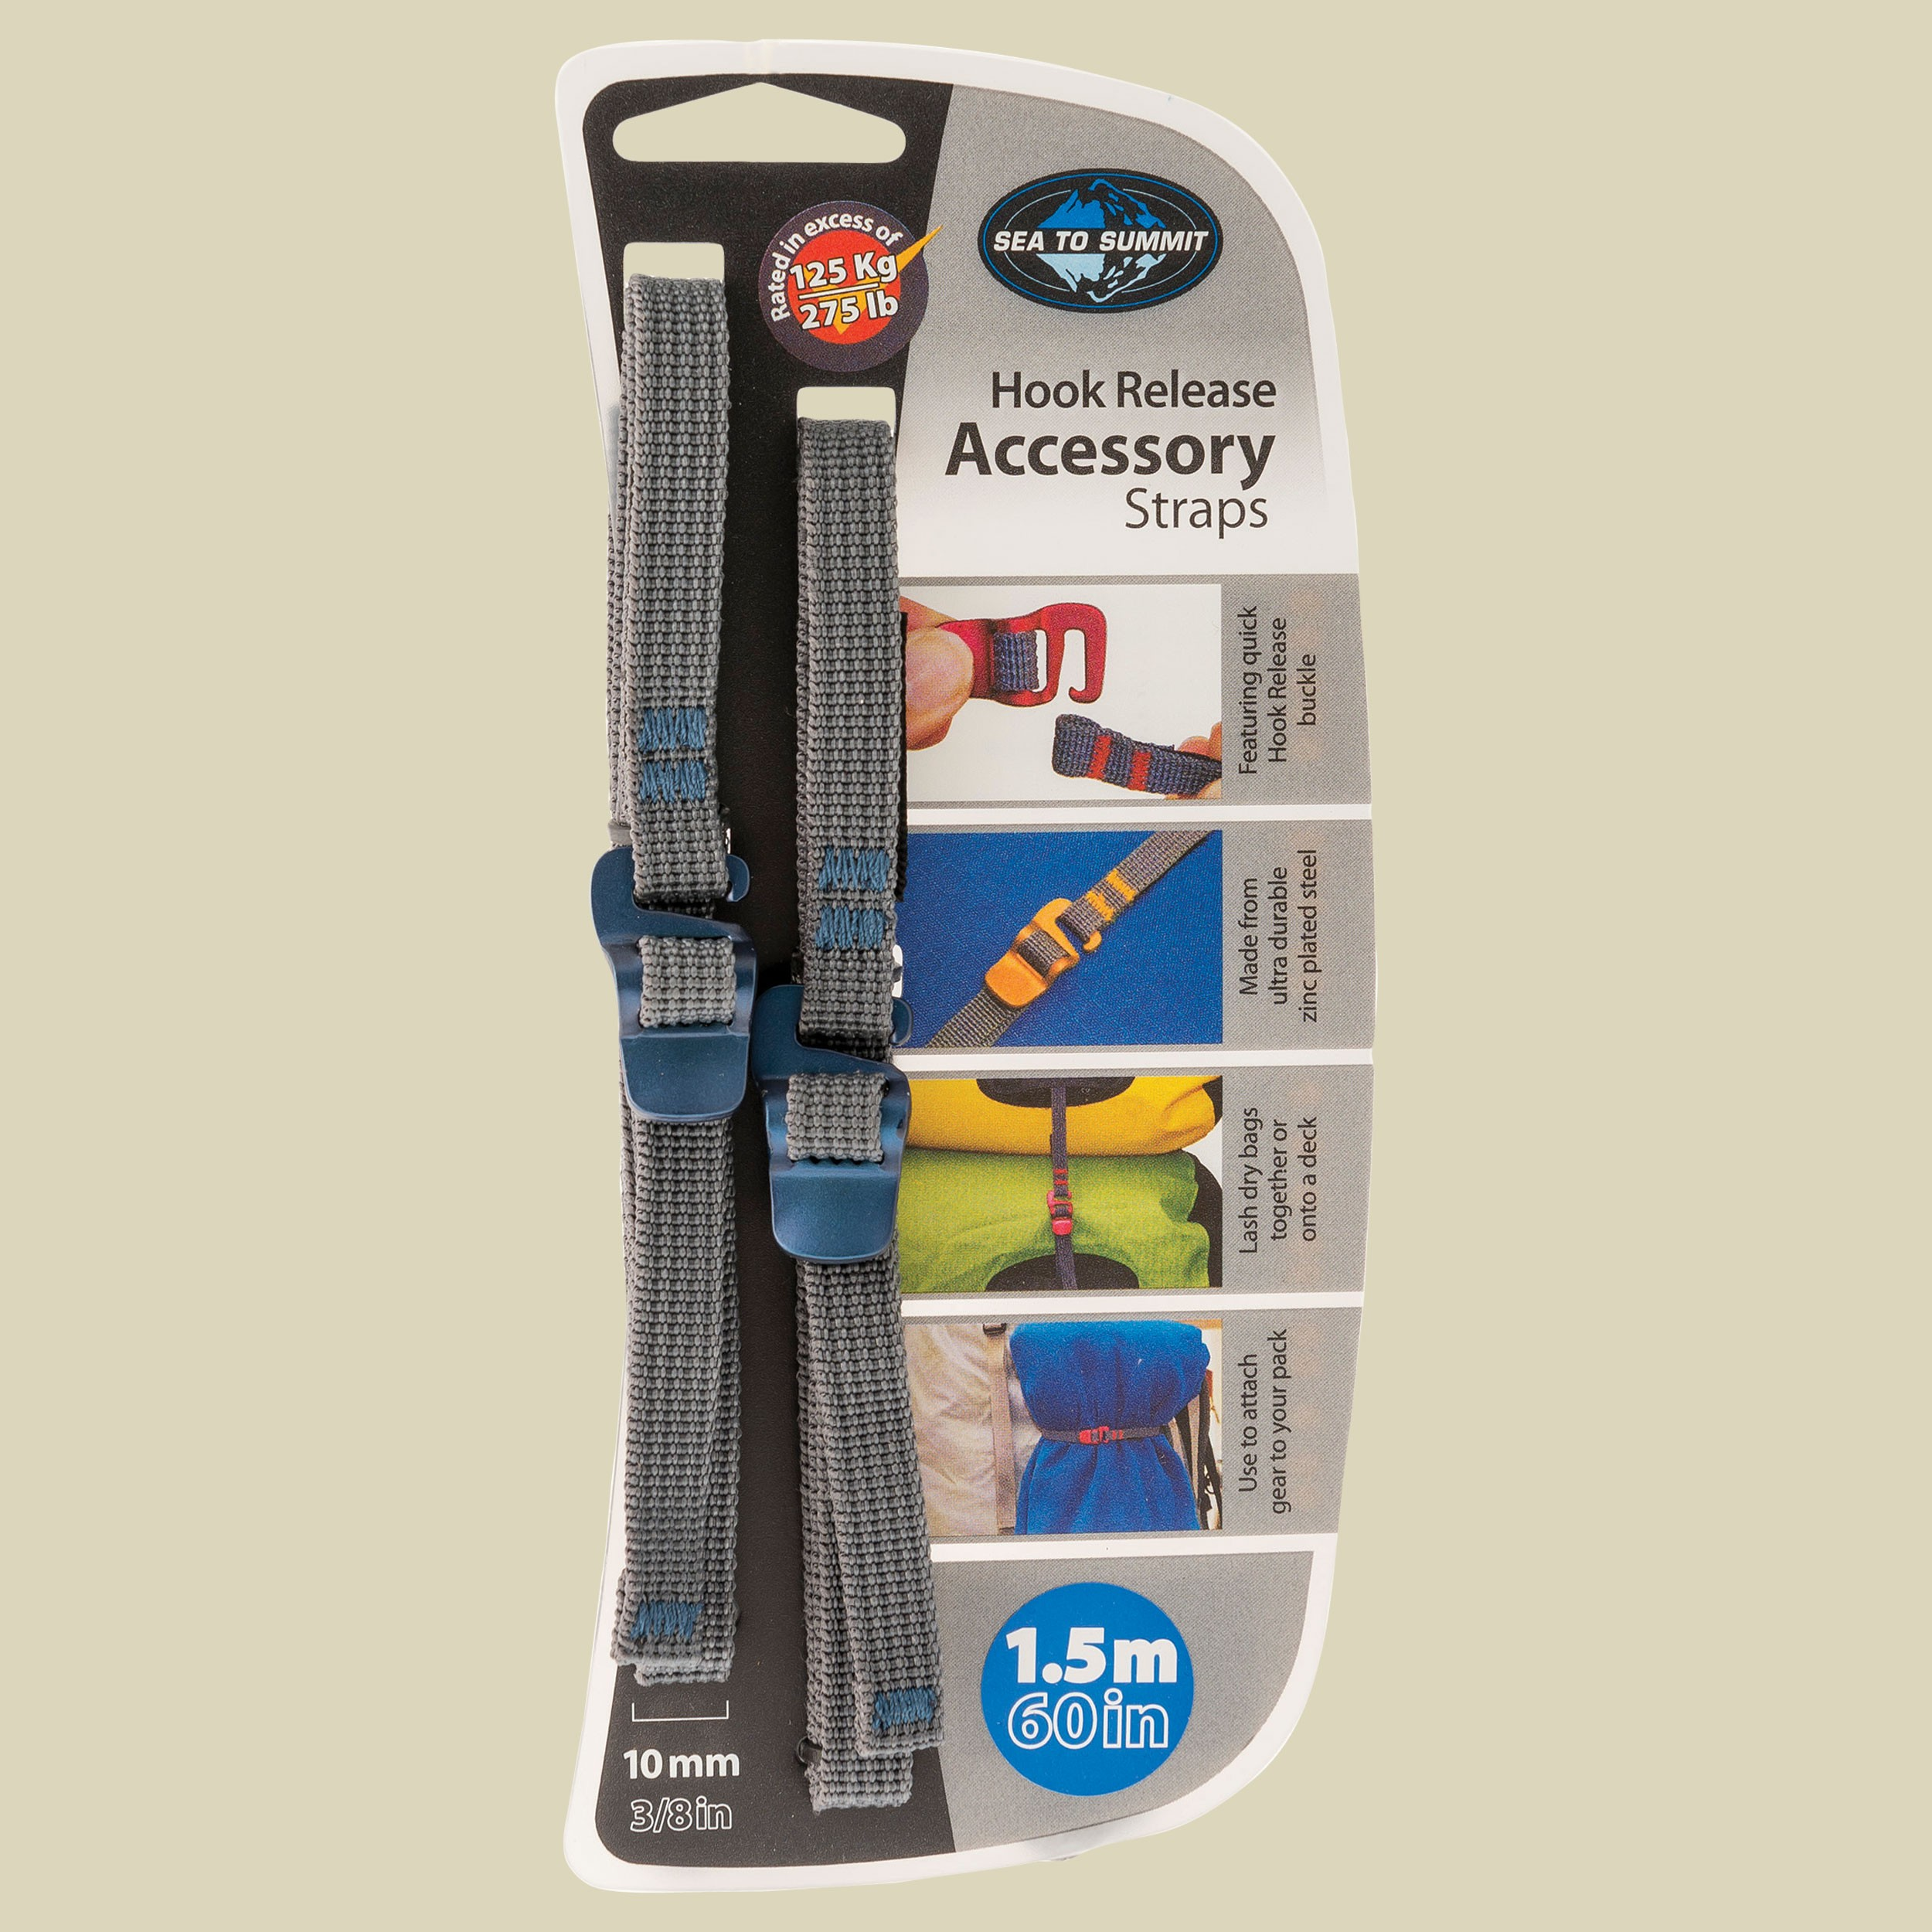 Tie Down Accessory Straps with Hook Release